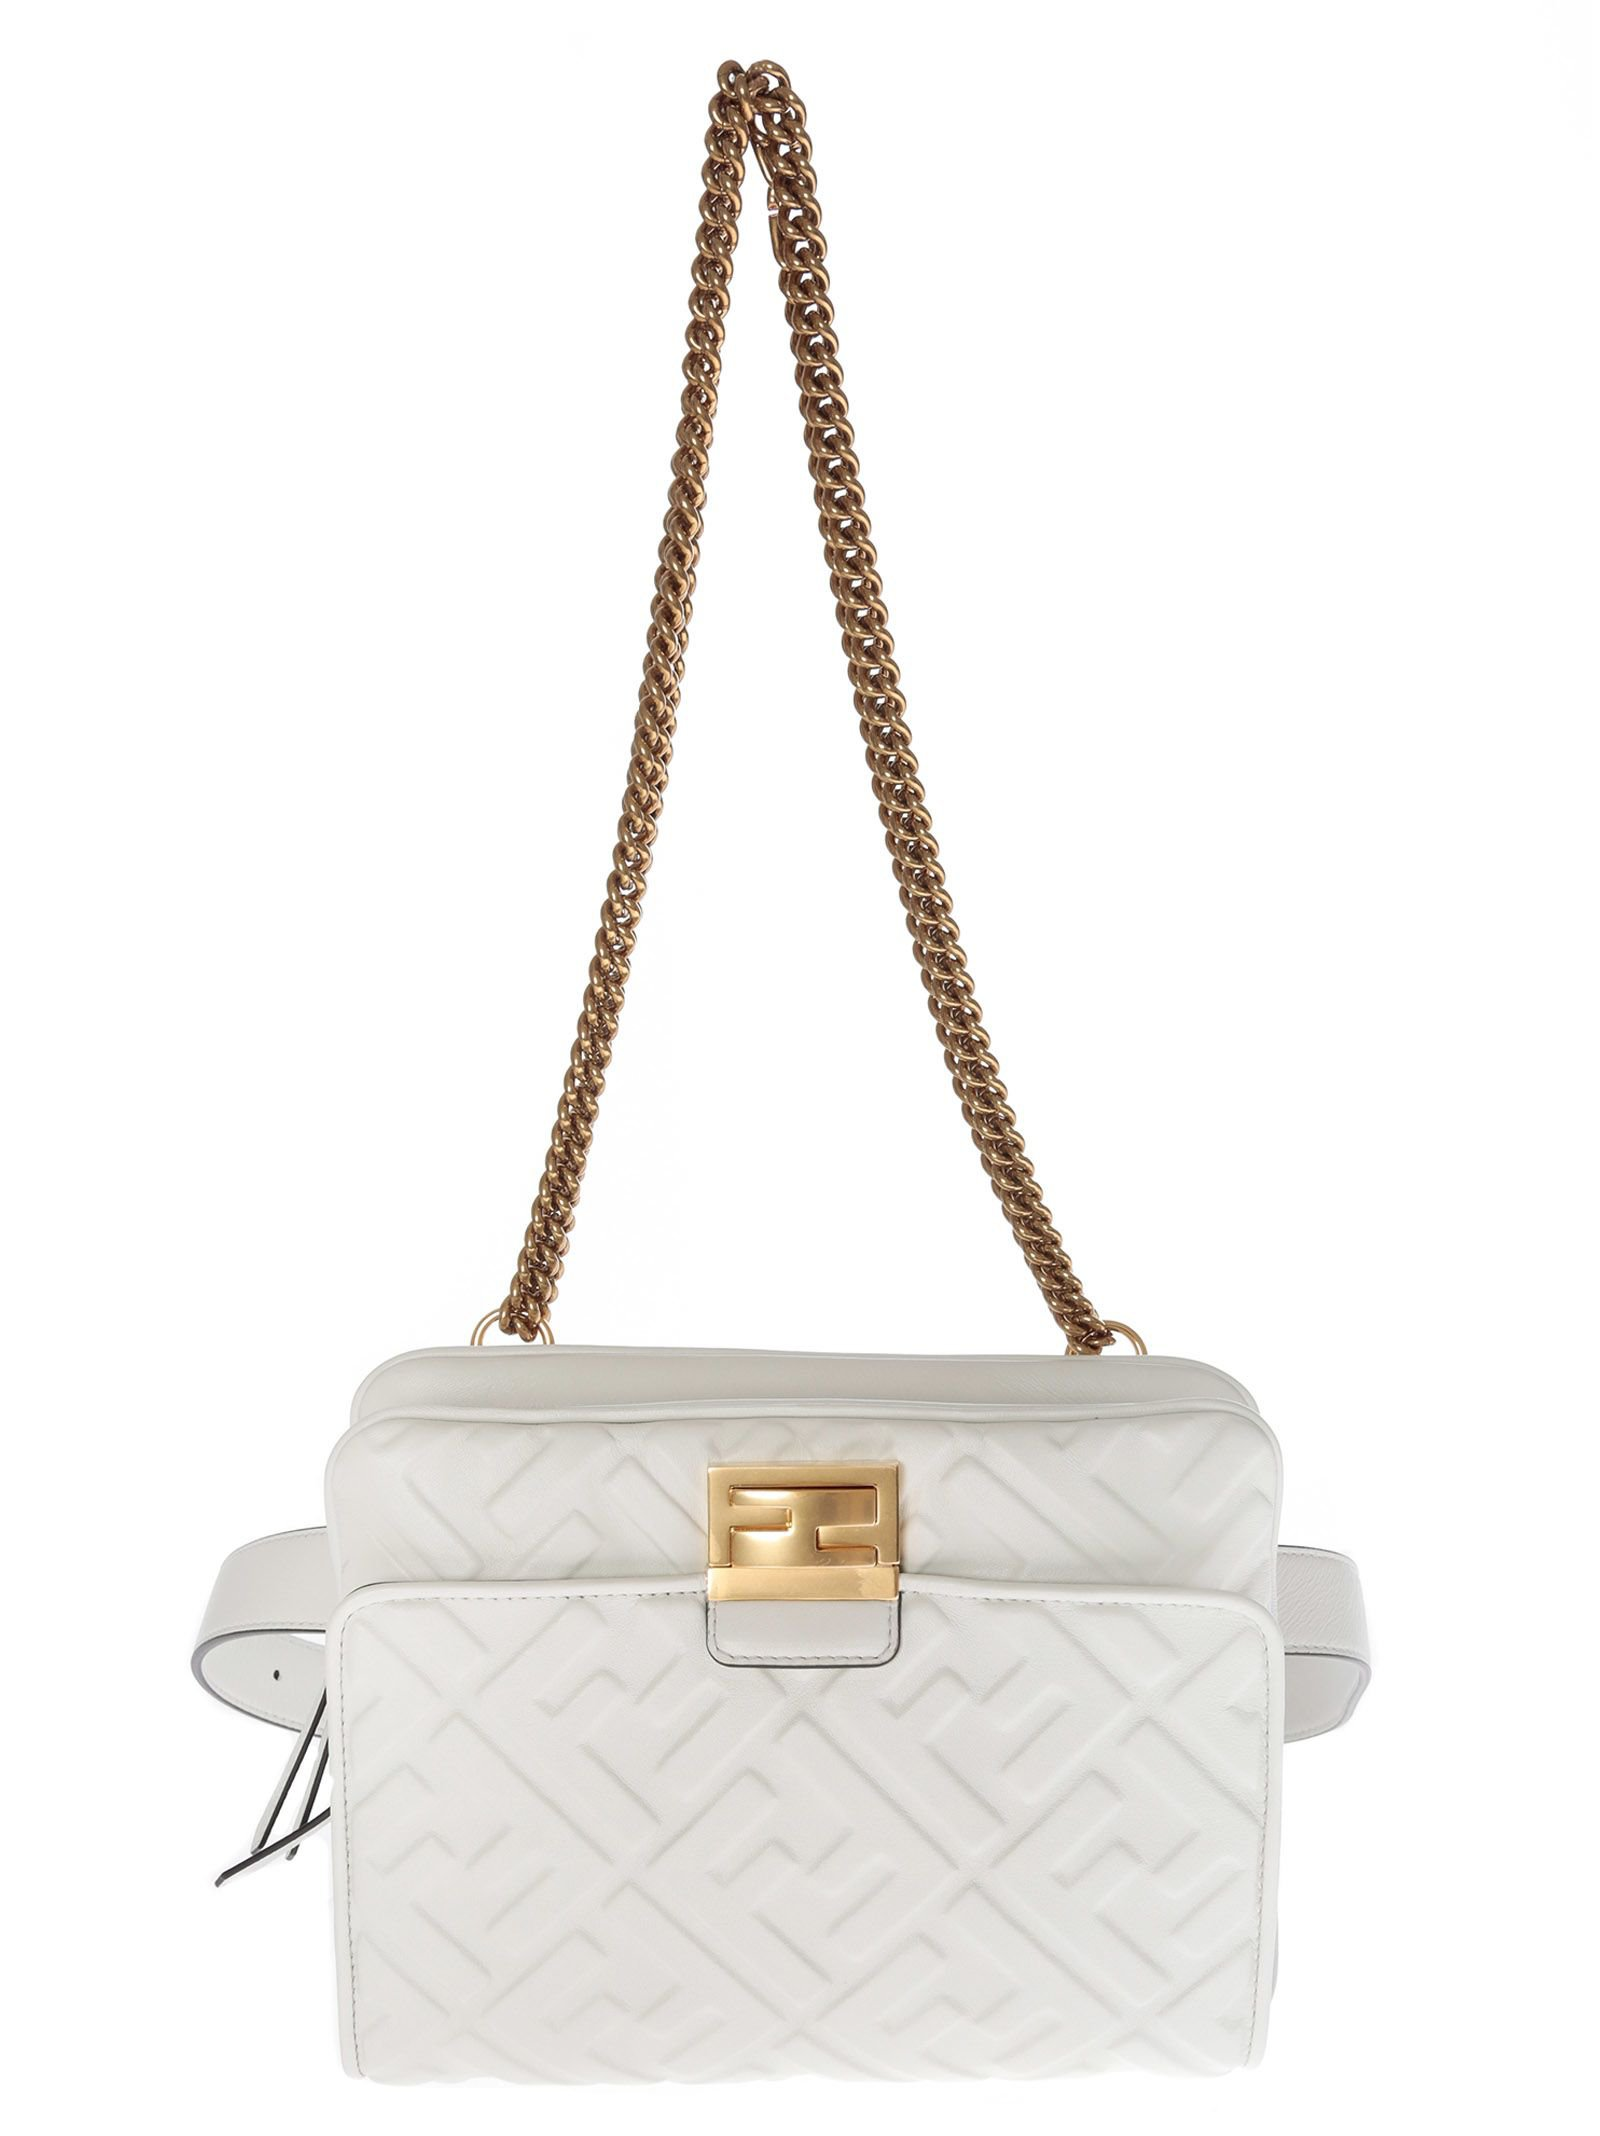 Fendi Upside Down Belt Bag